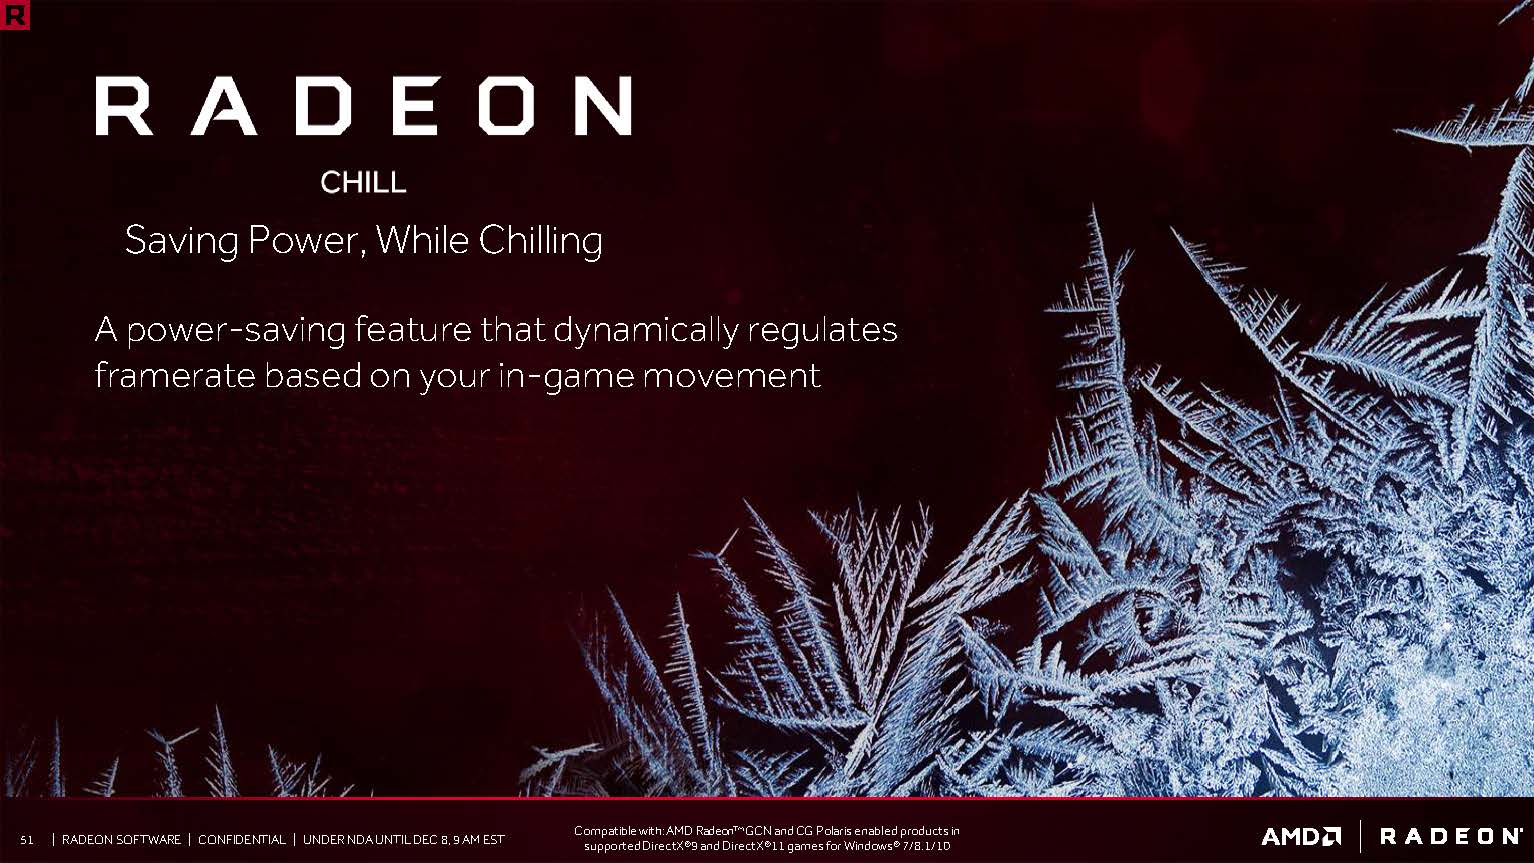 Radeon Chill Put to the Test: How Does it Actually Perform